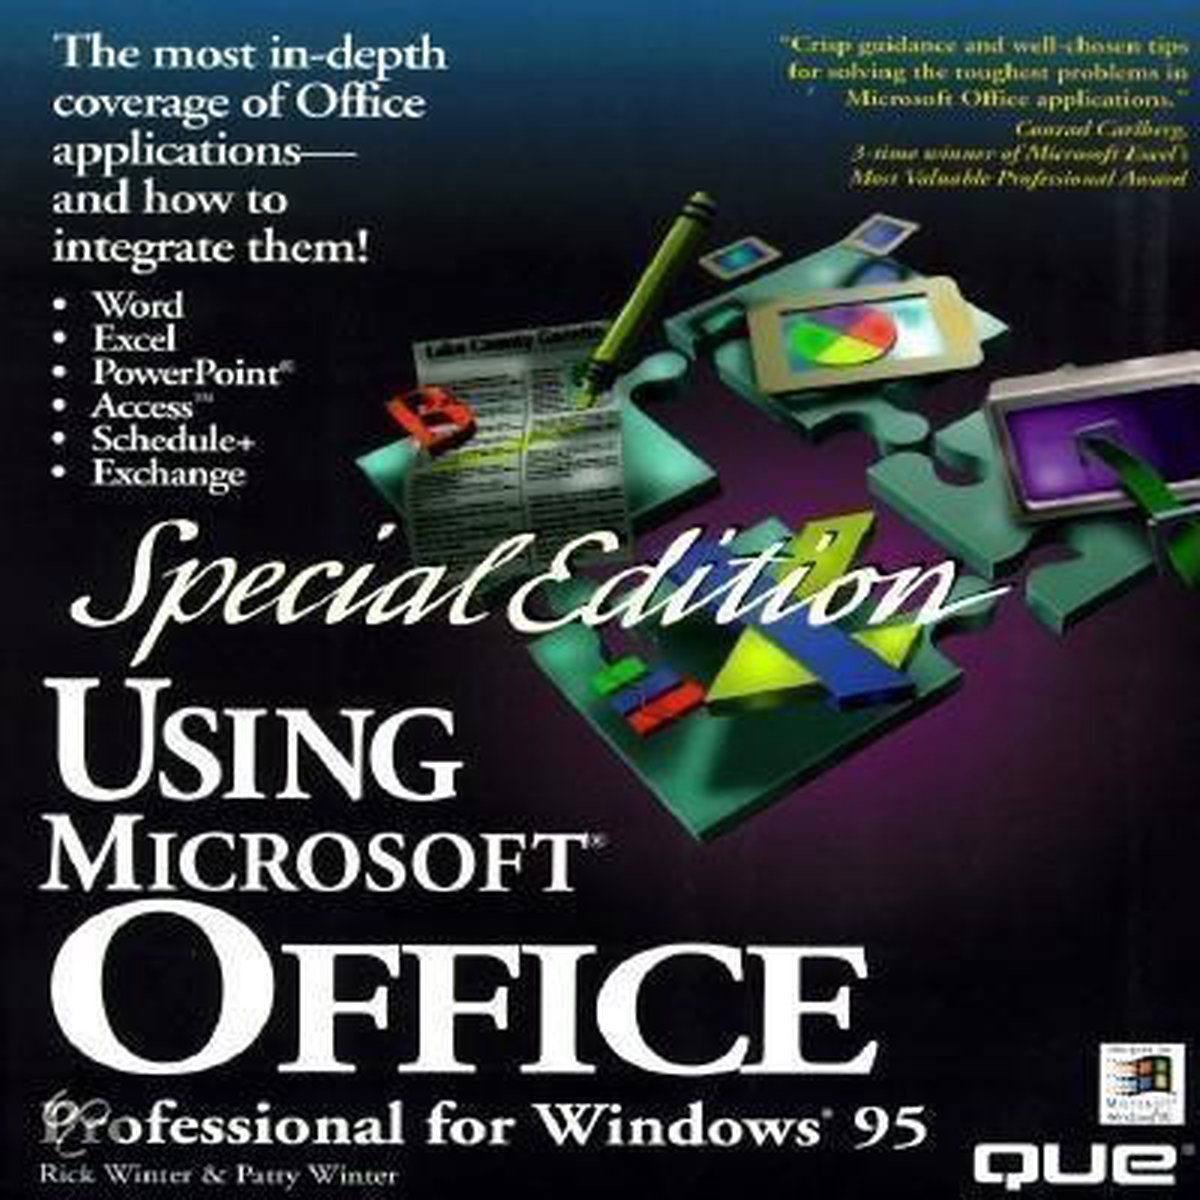 Using Microsoft Office Professional for Windows 95